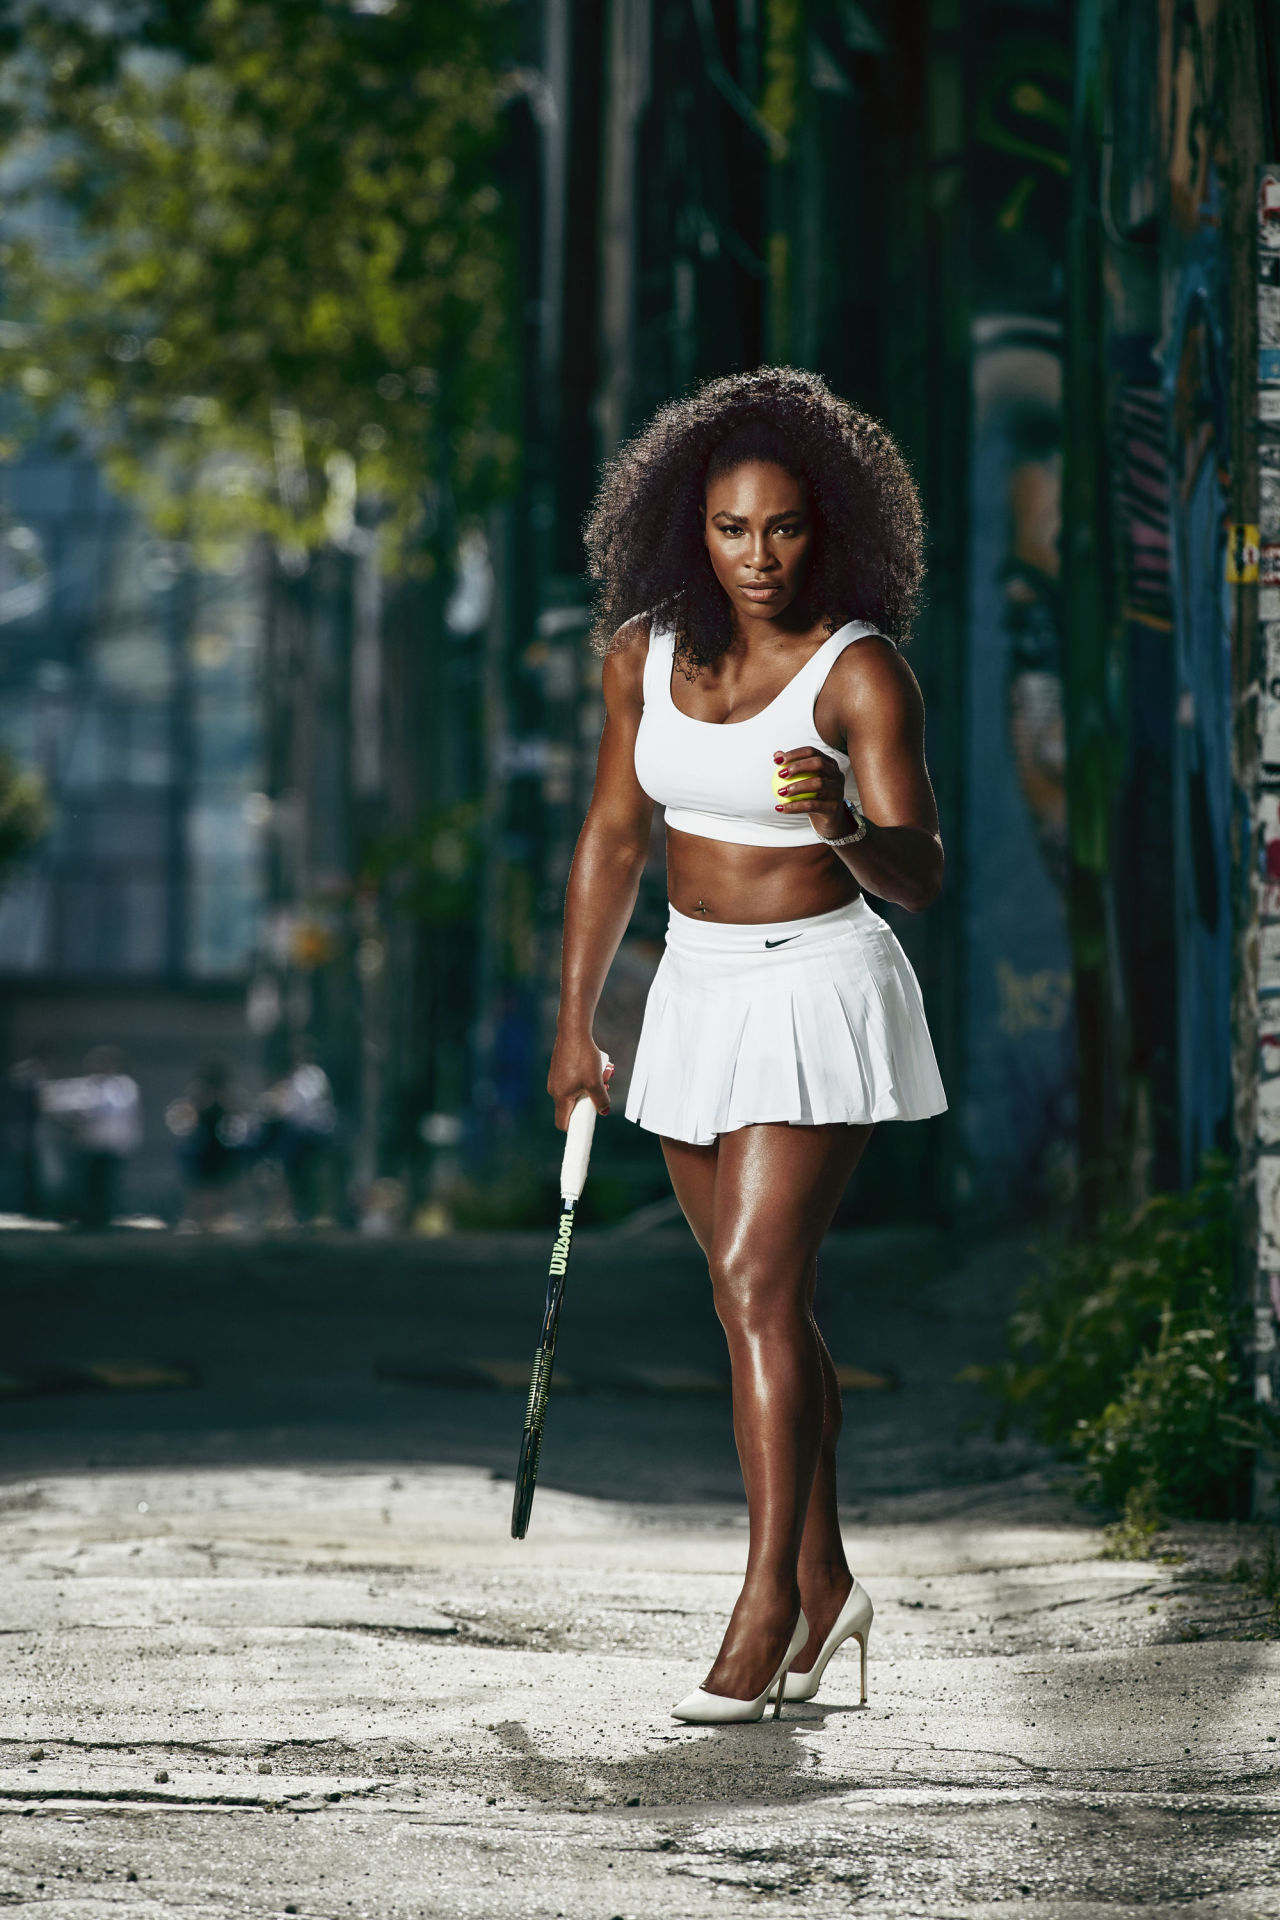 Women Empowerment - Black Women's Equal Pay Day: Serena Williams Sports Illustrated Cover black women's equal pay day Women Empowerment: Serena Williams and Black Women's Equal Pay Day b5149c875ff9786ada48c61787ad3716